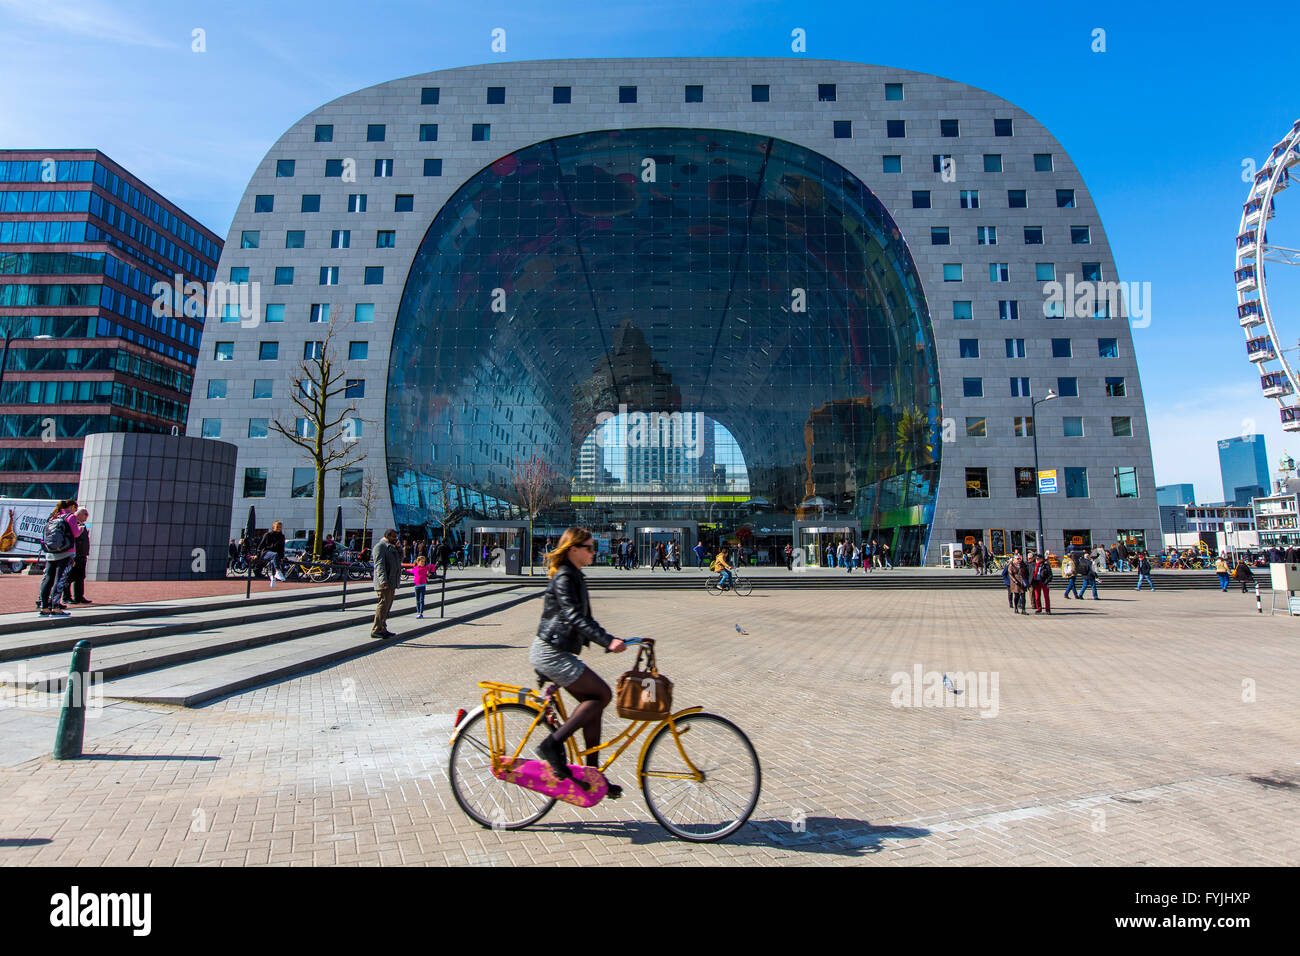 The new market hall in Rotterdam, the first covered market place in the Netherlands with more than 90 food shops - Stock Image